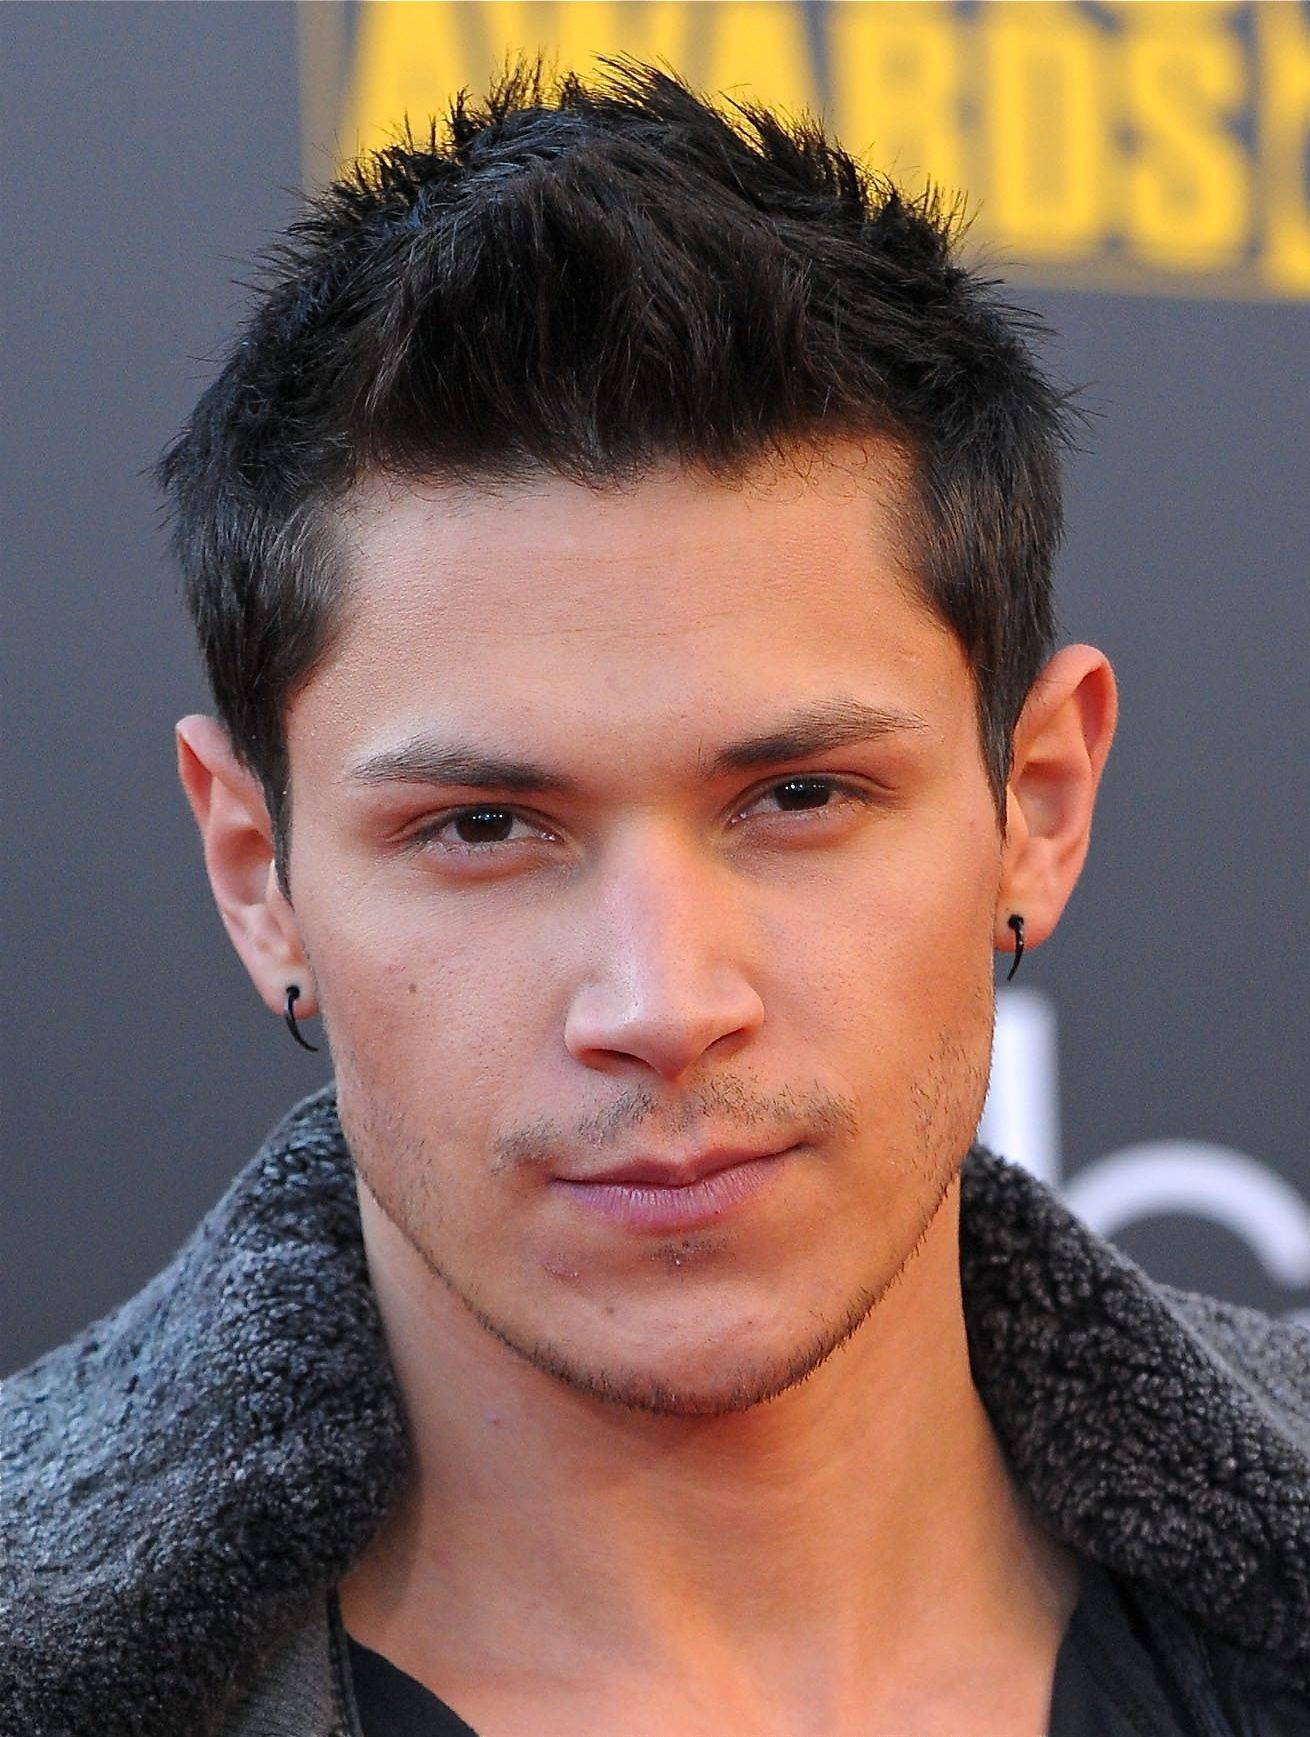 Best ideas about Mens Haircuts . Save or Pin Men s hairstyles 2013 the best LosHairos Now.